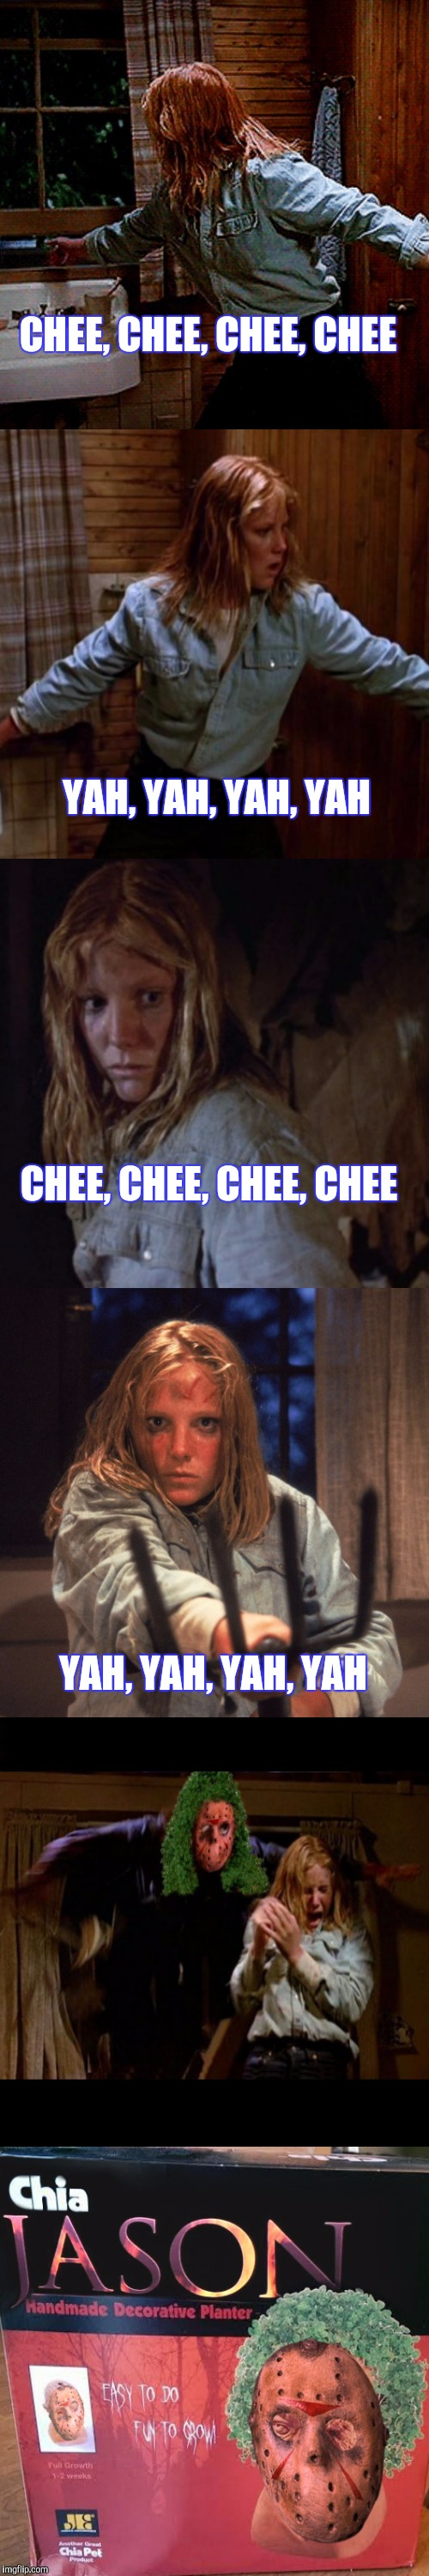 CH- CH- CH- CHUCKLE | CHEE, CHEE, CHEE, CHEE YAH, YAH, YAH, YAH CHEE, CHEE, CHEE, CHEE YAH, YAH, YAH, YAH | image tagged in jason voorhees,funny,halloween,scary,dumb | made w/ Imgflip meme maker